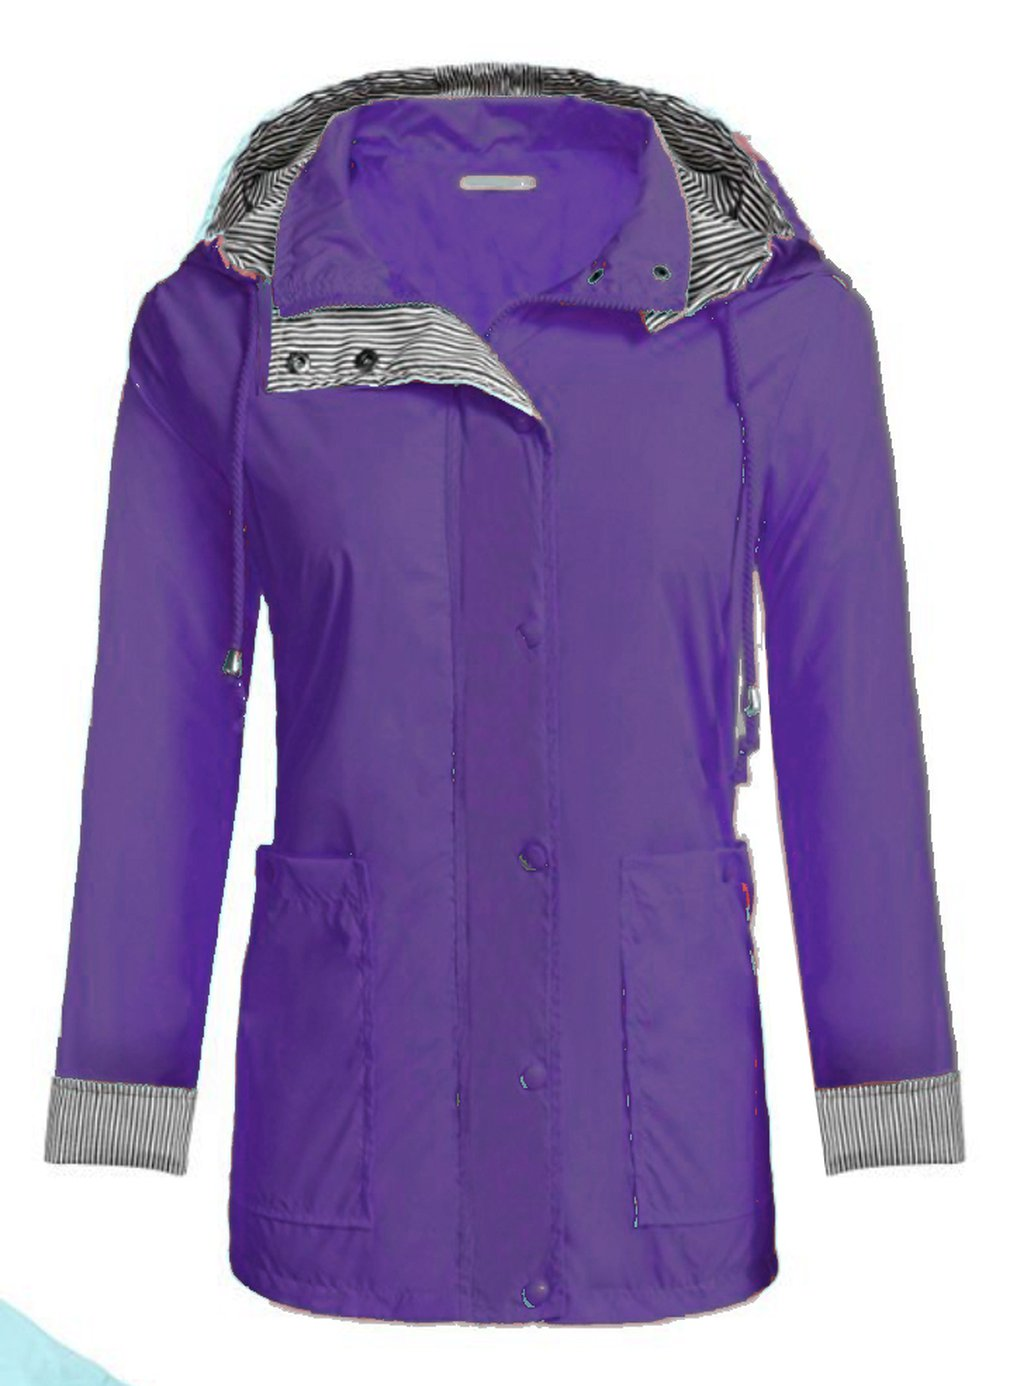 Lightweight Women Hooded Raincoat With 2 Big Pockets Long Sleeve Waterproof Zipper Rain Jacket Outdoor Rainwear